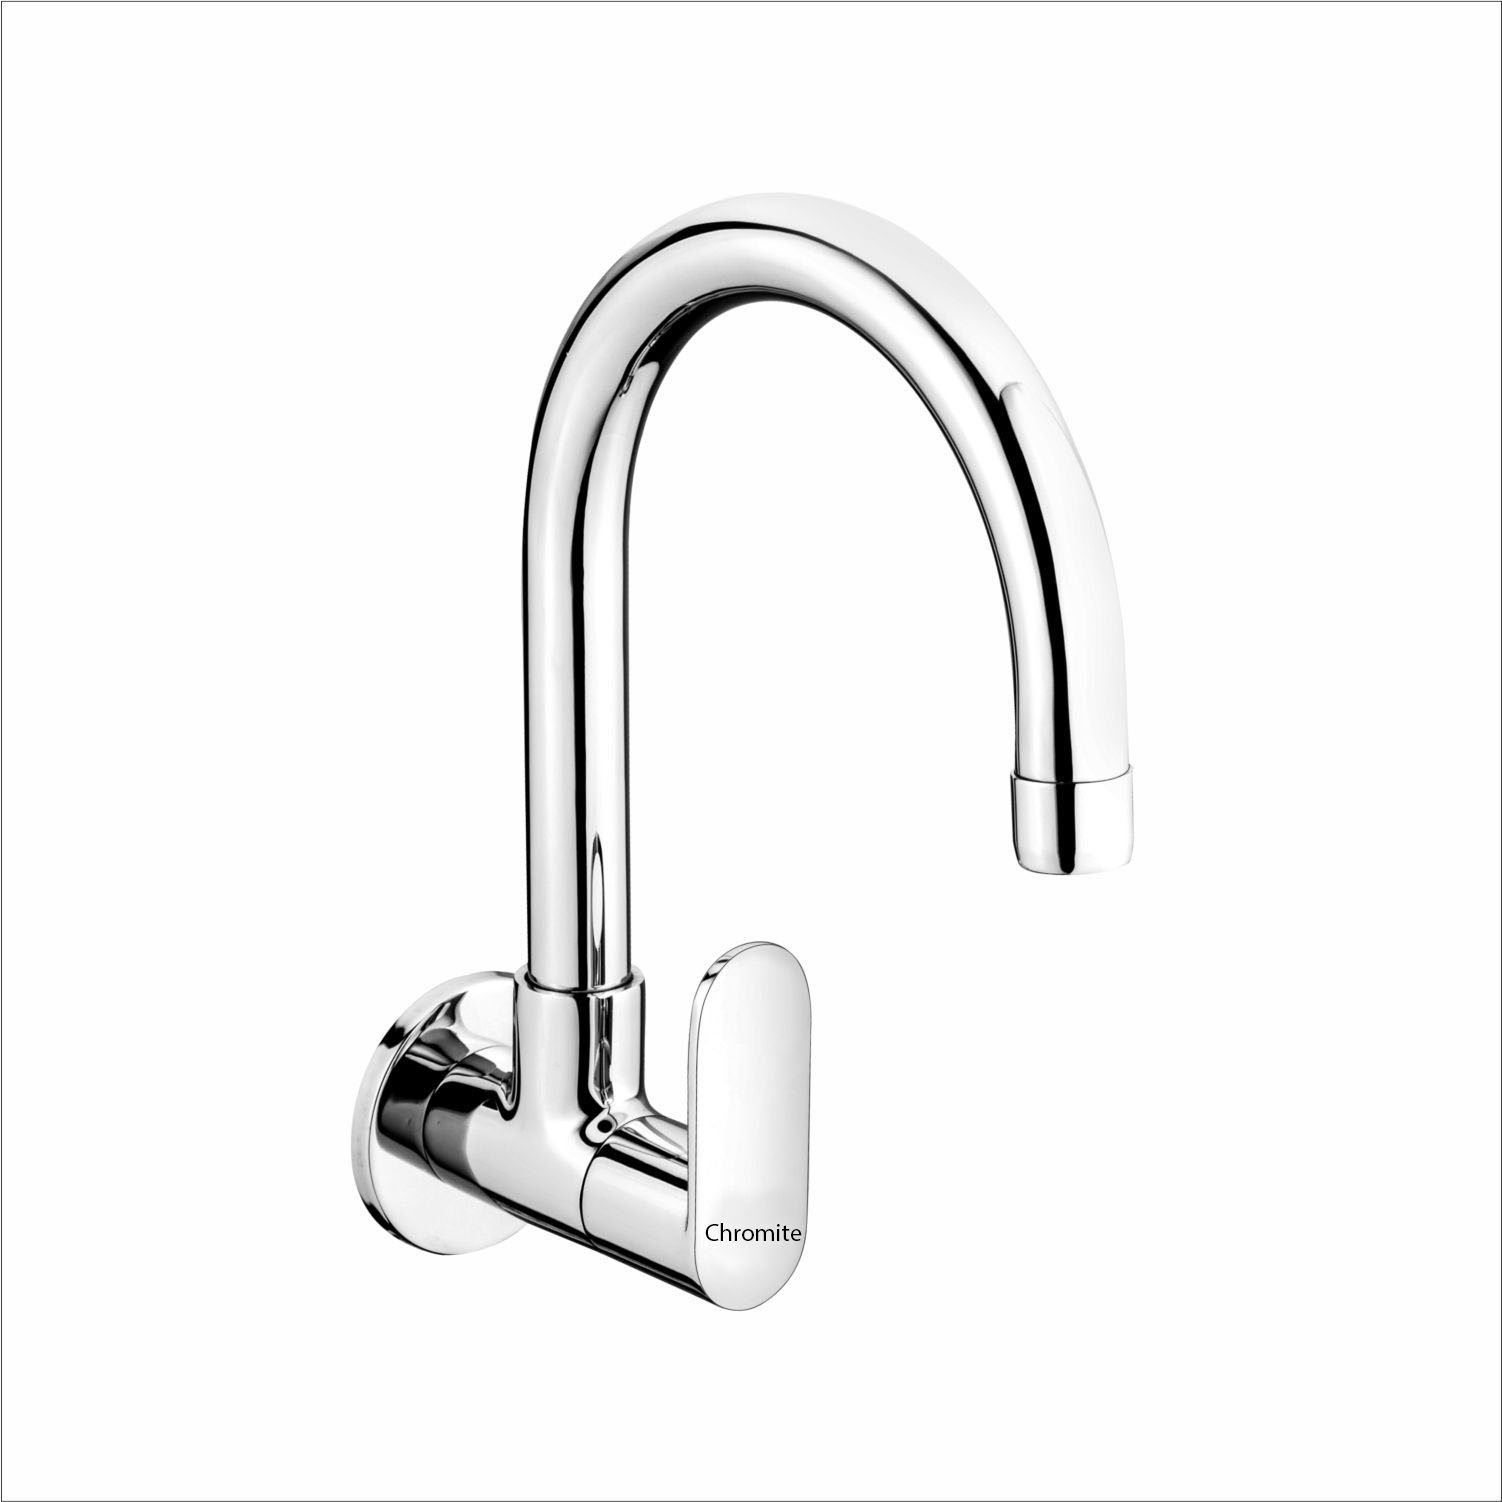 OPL-109 Sink Cock With Regular Swinging Spout (Wall Mounted)